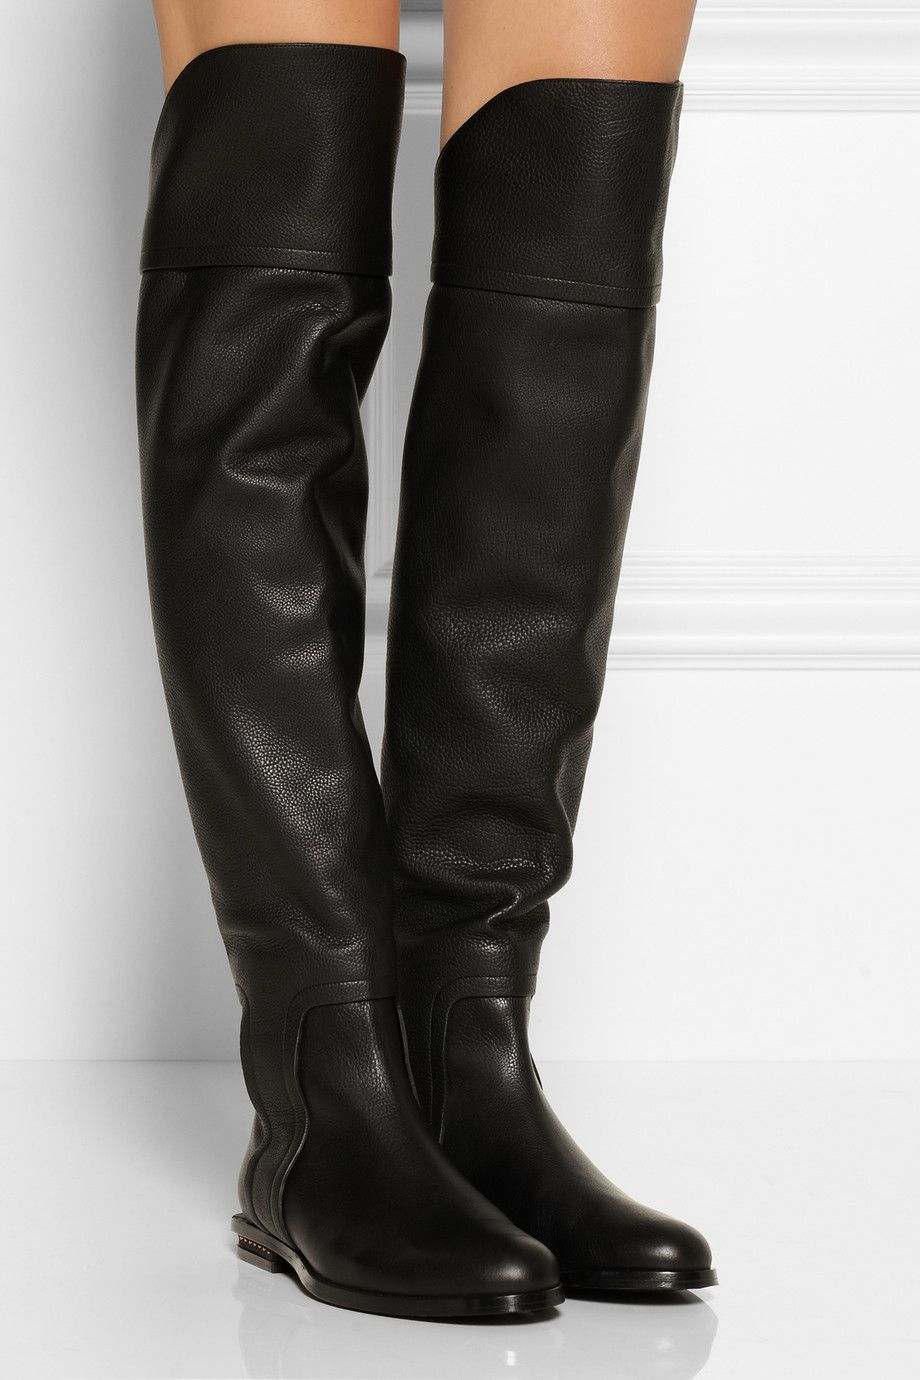 Black Leather Vogue Designer Flat Knee High Boots | The Shoes I ...